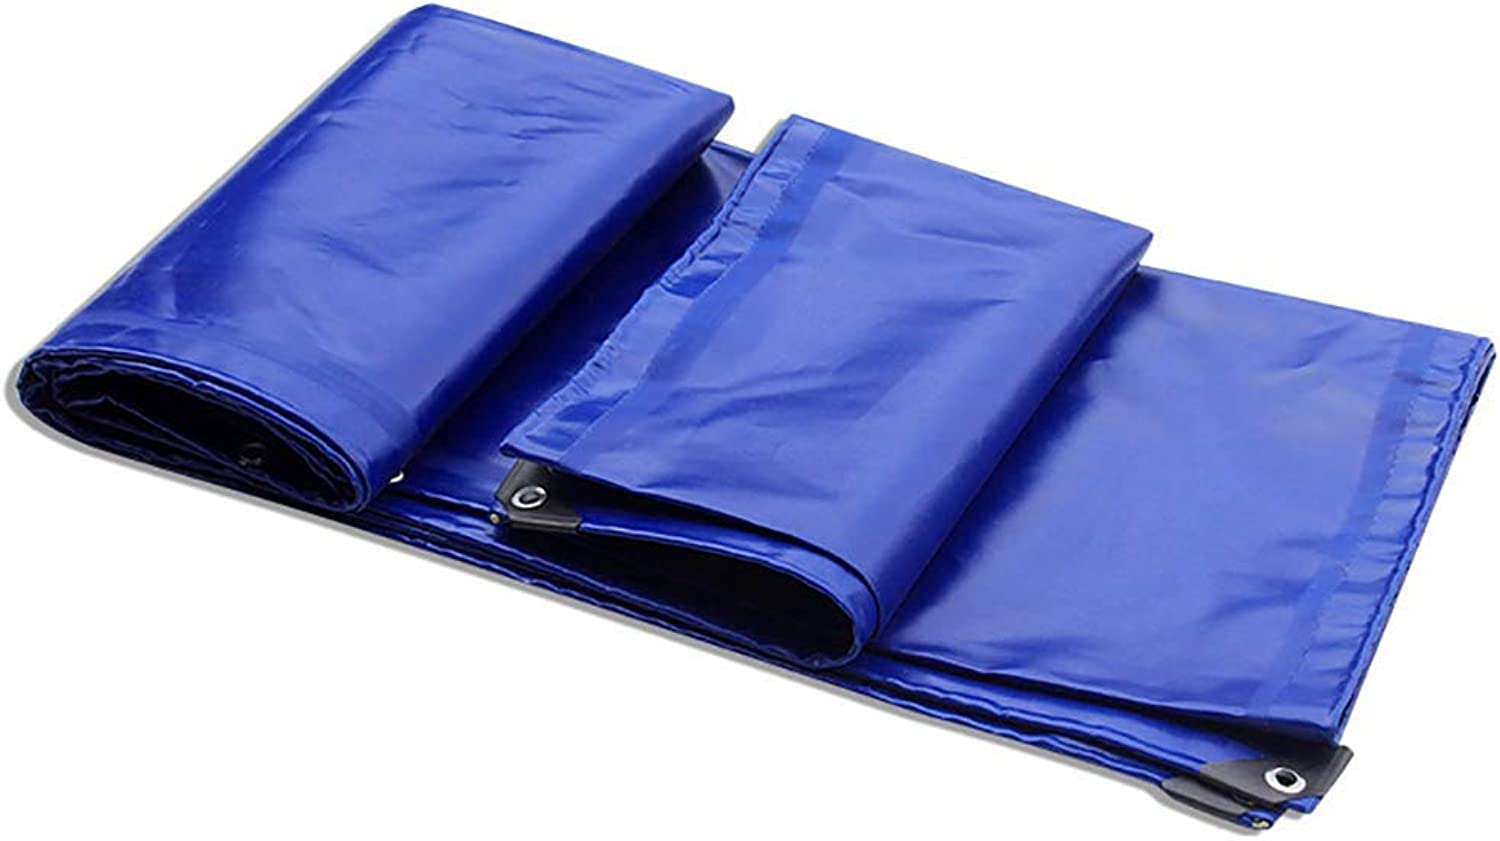 2BRNEBN bluee Thickened Rainproof Cloth Car Rubberized Canvas,650g  m2